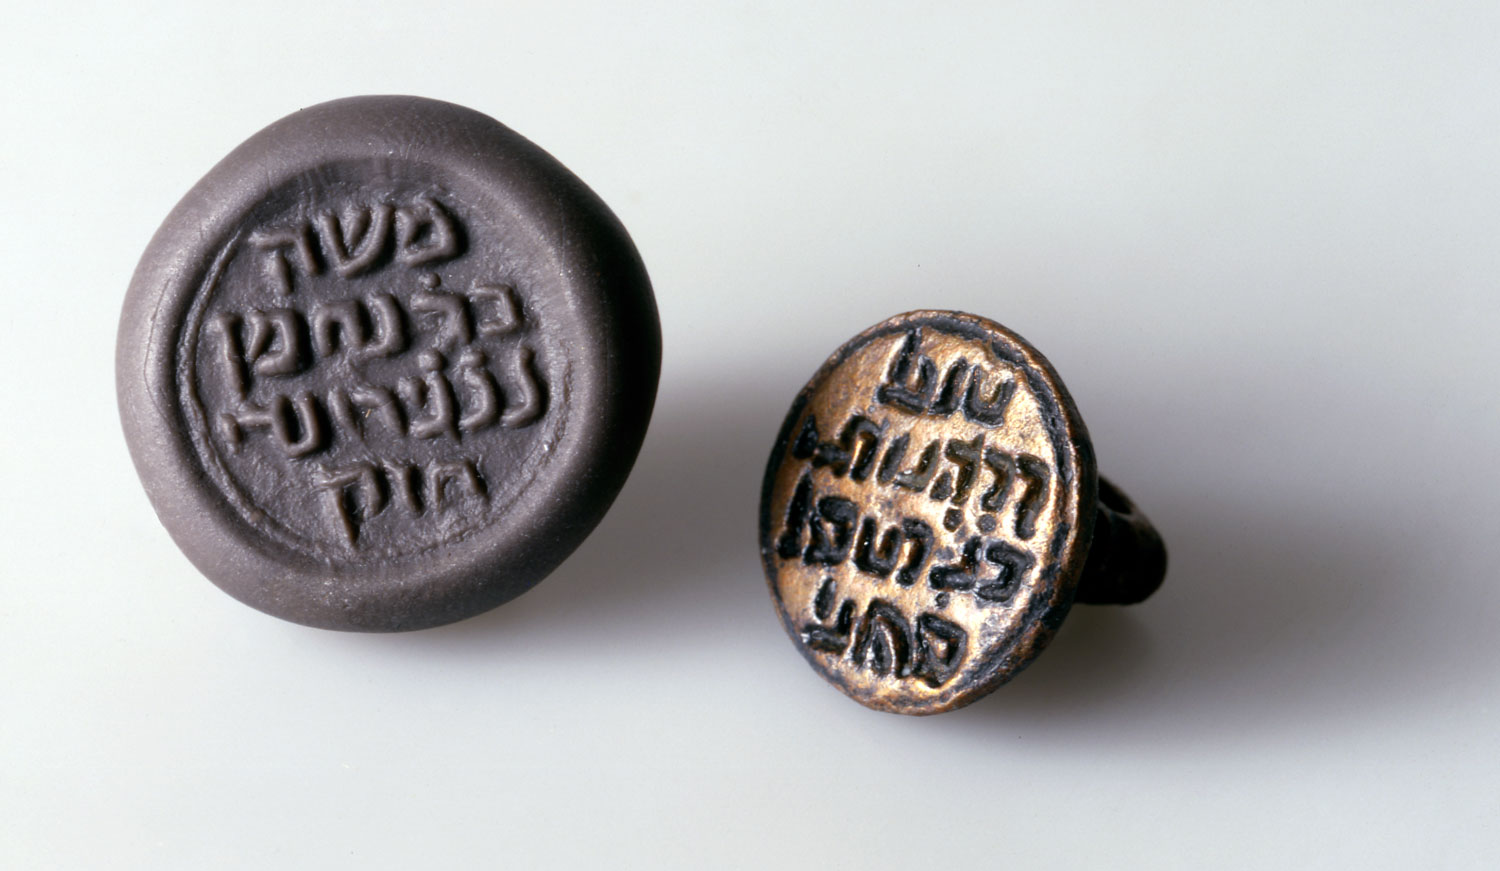 This seal belonging to Nahmanides, shown here with a corresponding wax imprint, was found in the environs of Akko. Nahmanides arrived in Akko towards the end of his life and was buried there